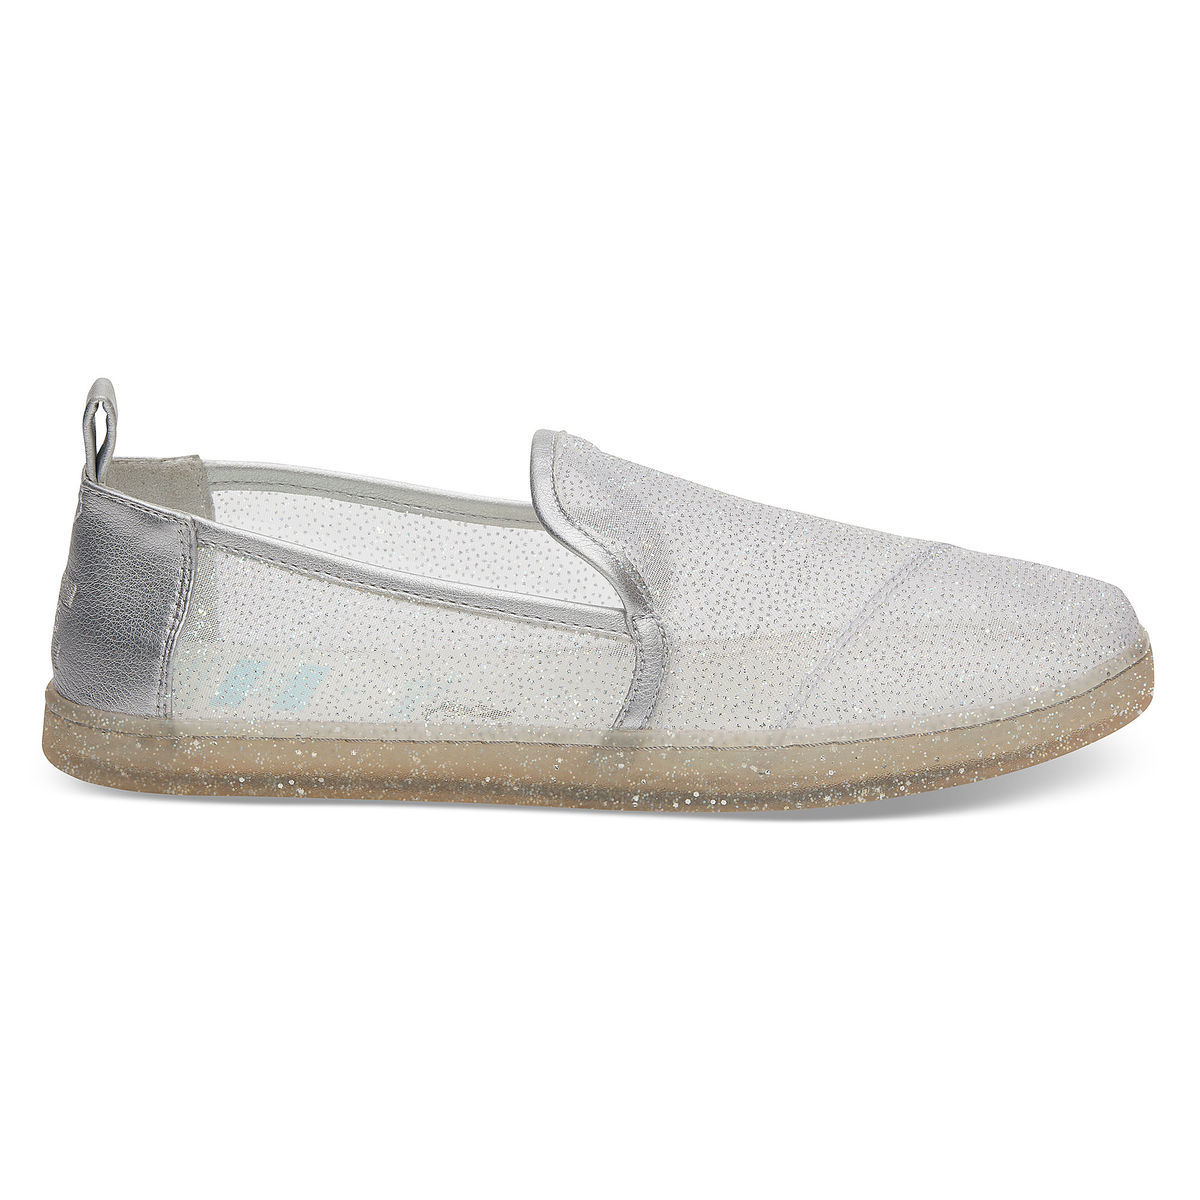 Product Image of Gus and Jaq Glitter Mesh Shoes for Women by TOMS -  Cinderella   f62073ad8bf